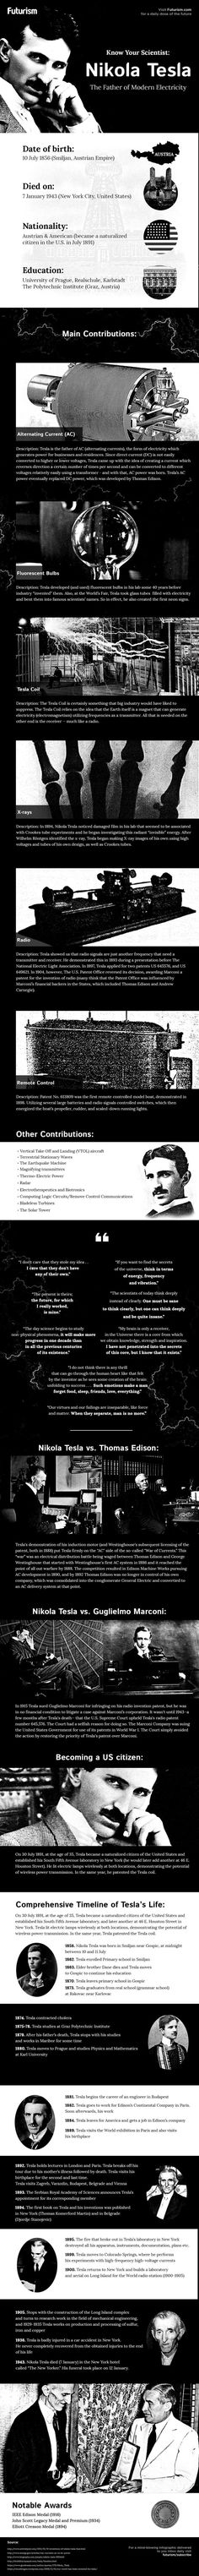 Nikola Tesla Inventions Used Today Infographic. Topic: inventor, patent, electricity, scientist, engineer.